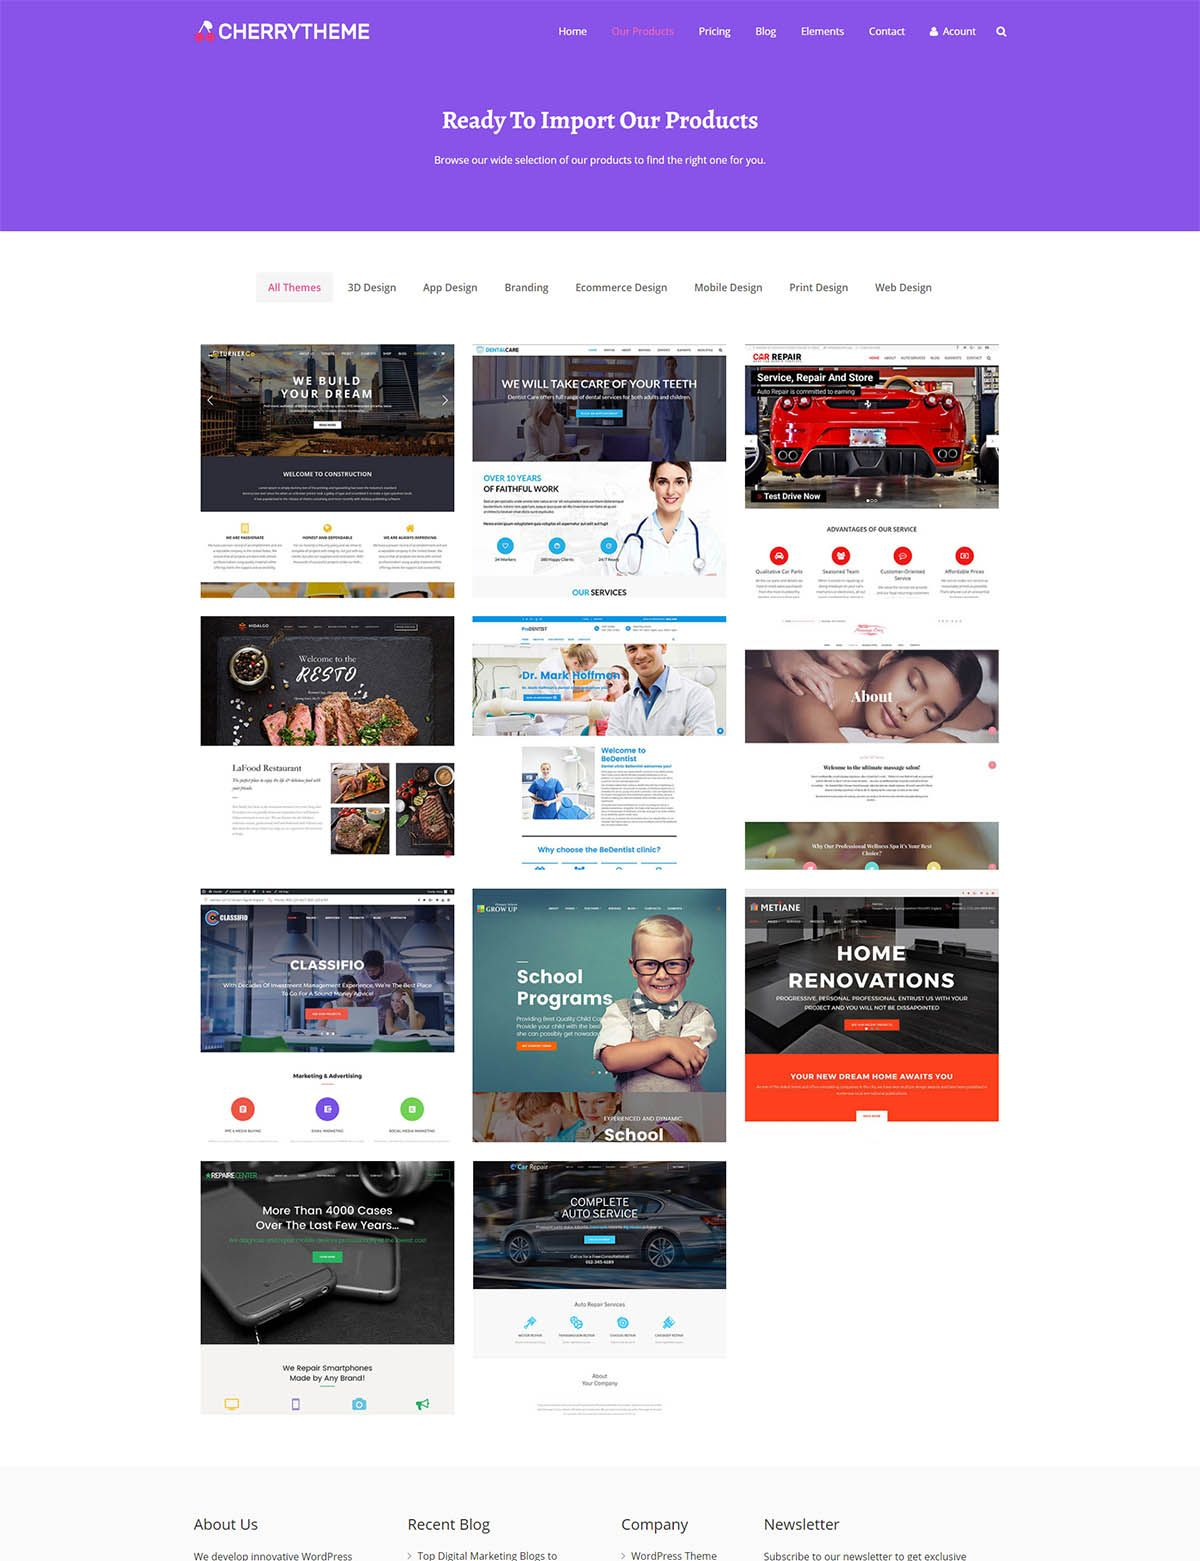 CherryTheme - Marketplace Easy Digital Download Screenshot 1